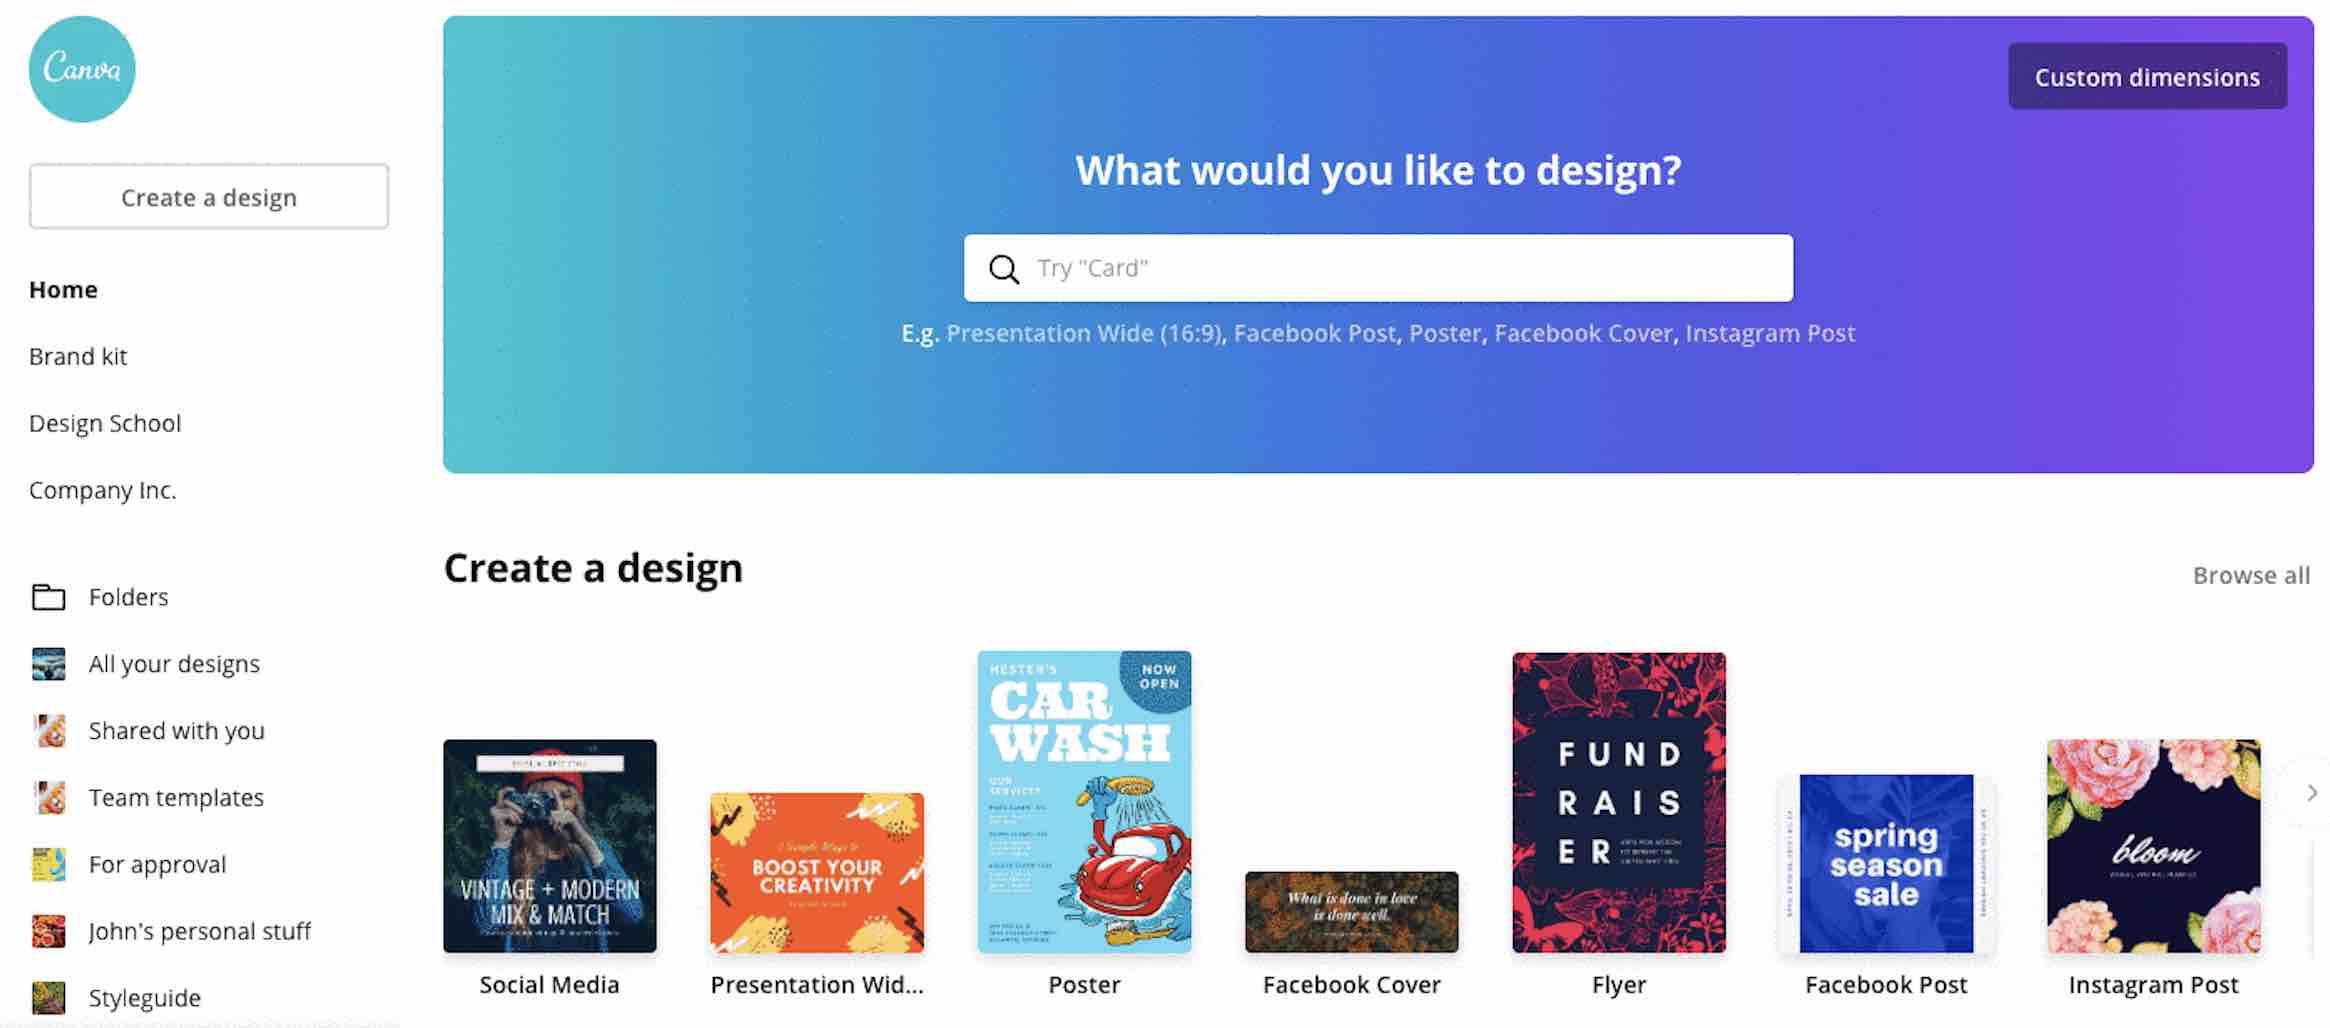 Screenshot of Canva home page